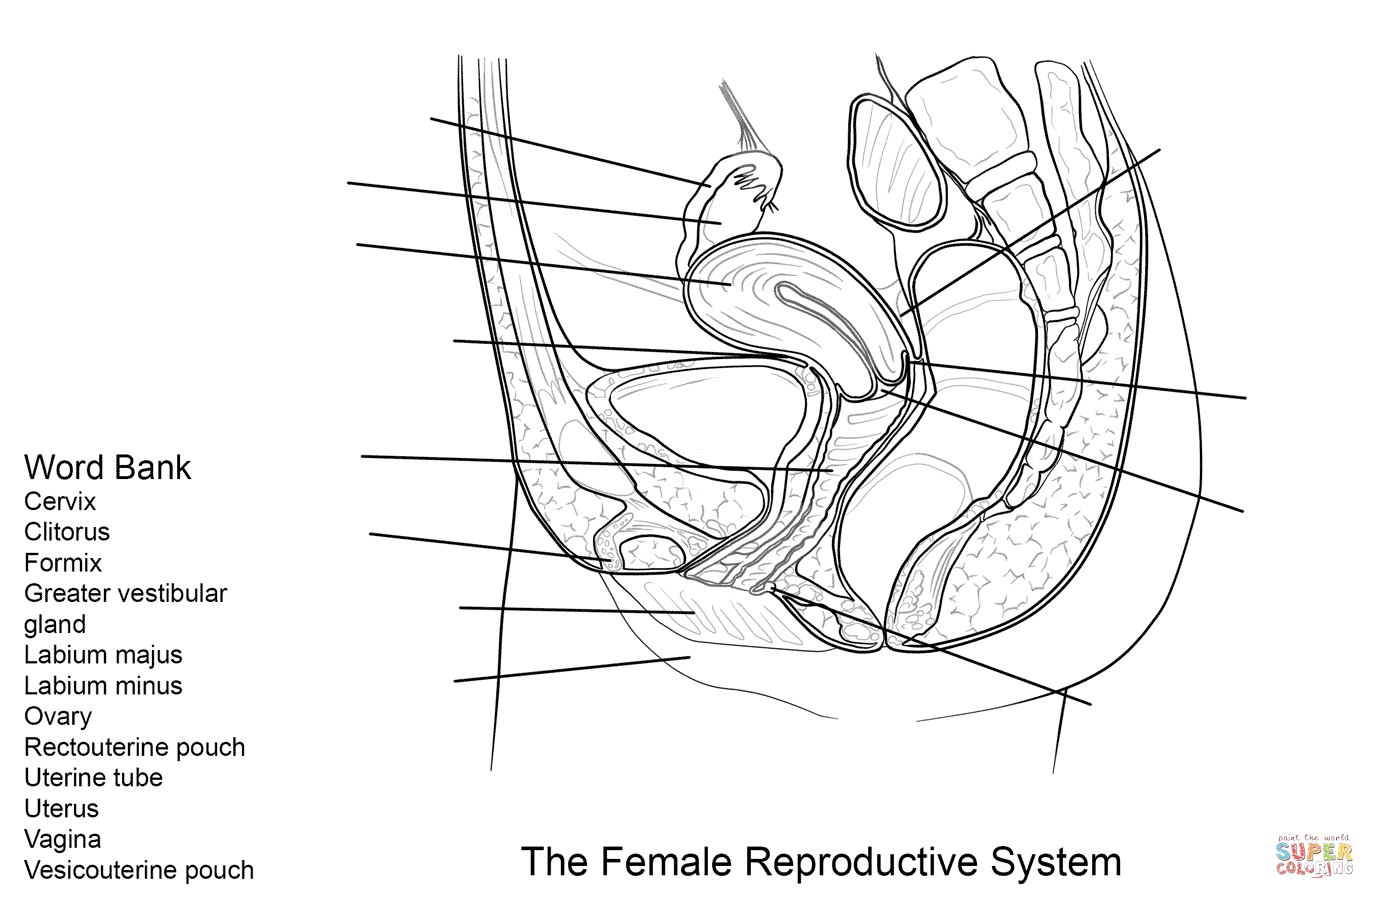 colouring sheets for adults coloring sheets adult coloring female reproductive system medical [ 1375 x 899 Pixel ]